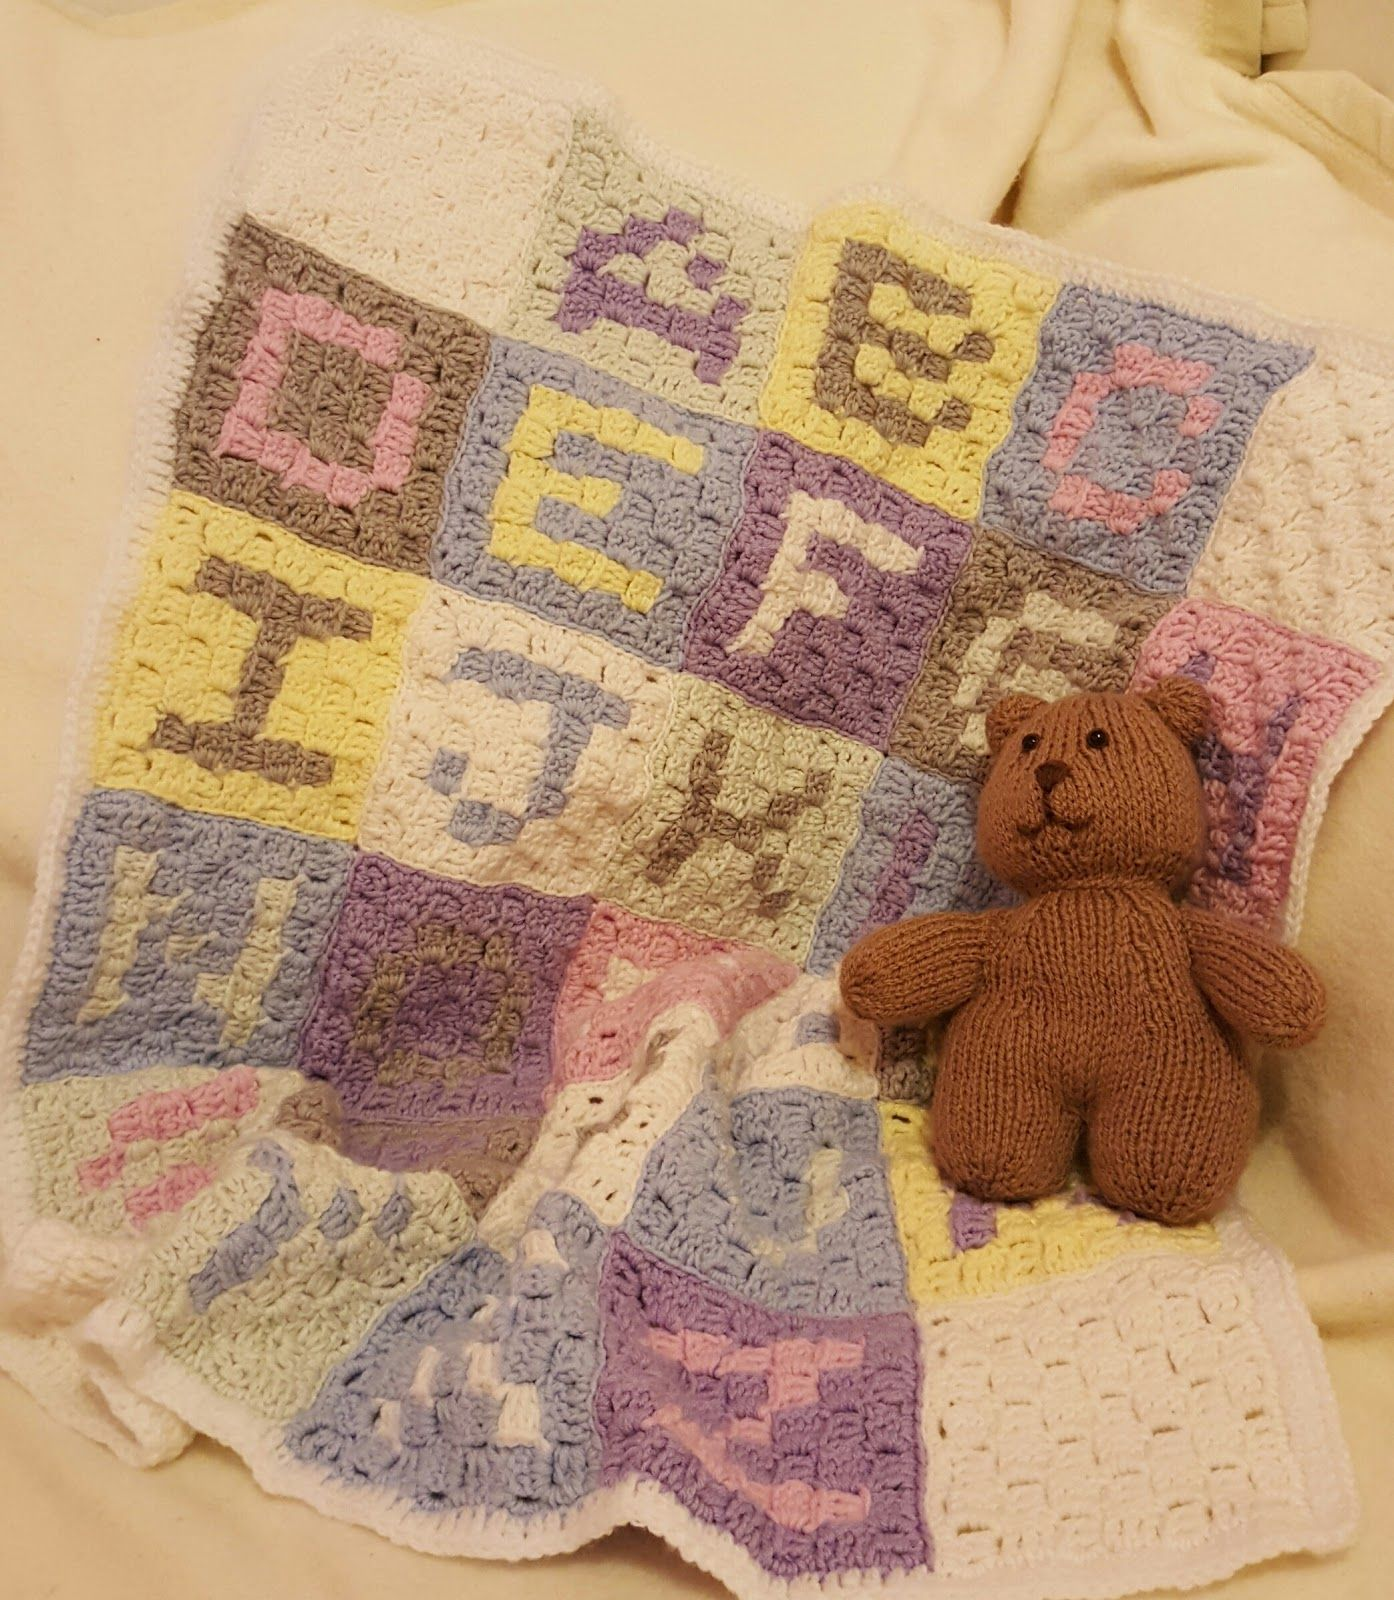 Based in cheshire kim jackson is the knitting and crochet owl in stitches alphabet baby blanket free crochet pattern stitch pattern bankloansurffo Image collections